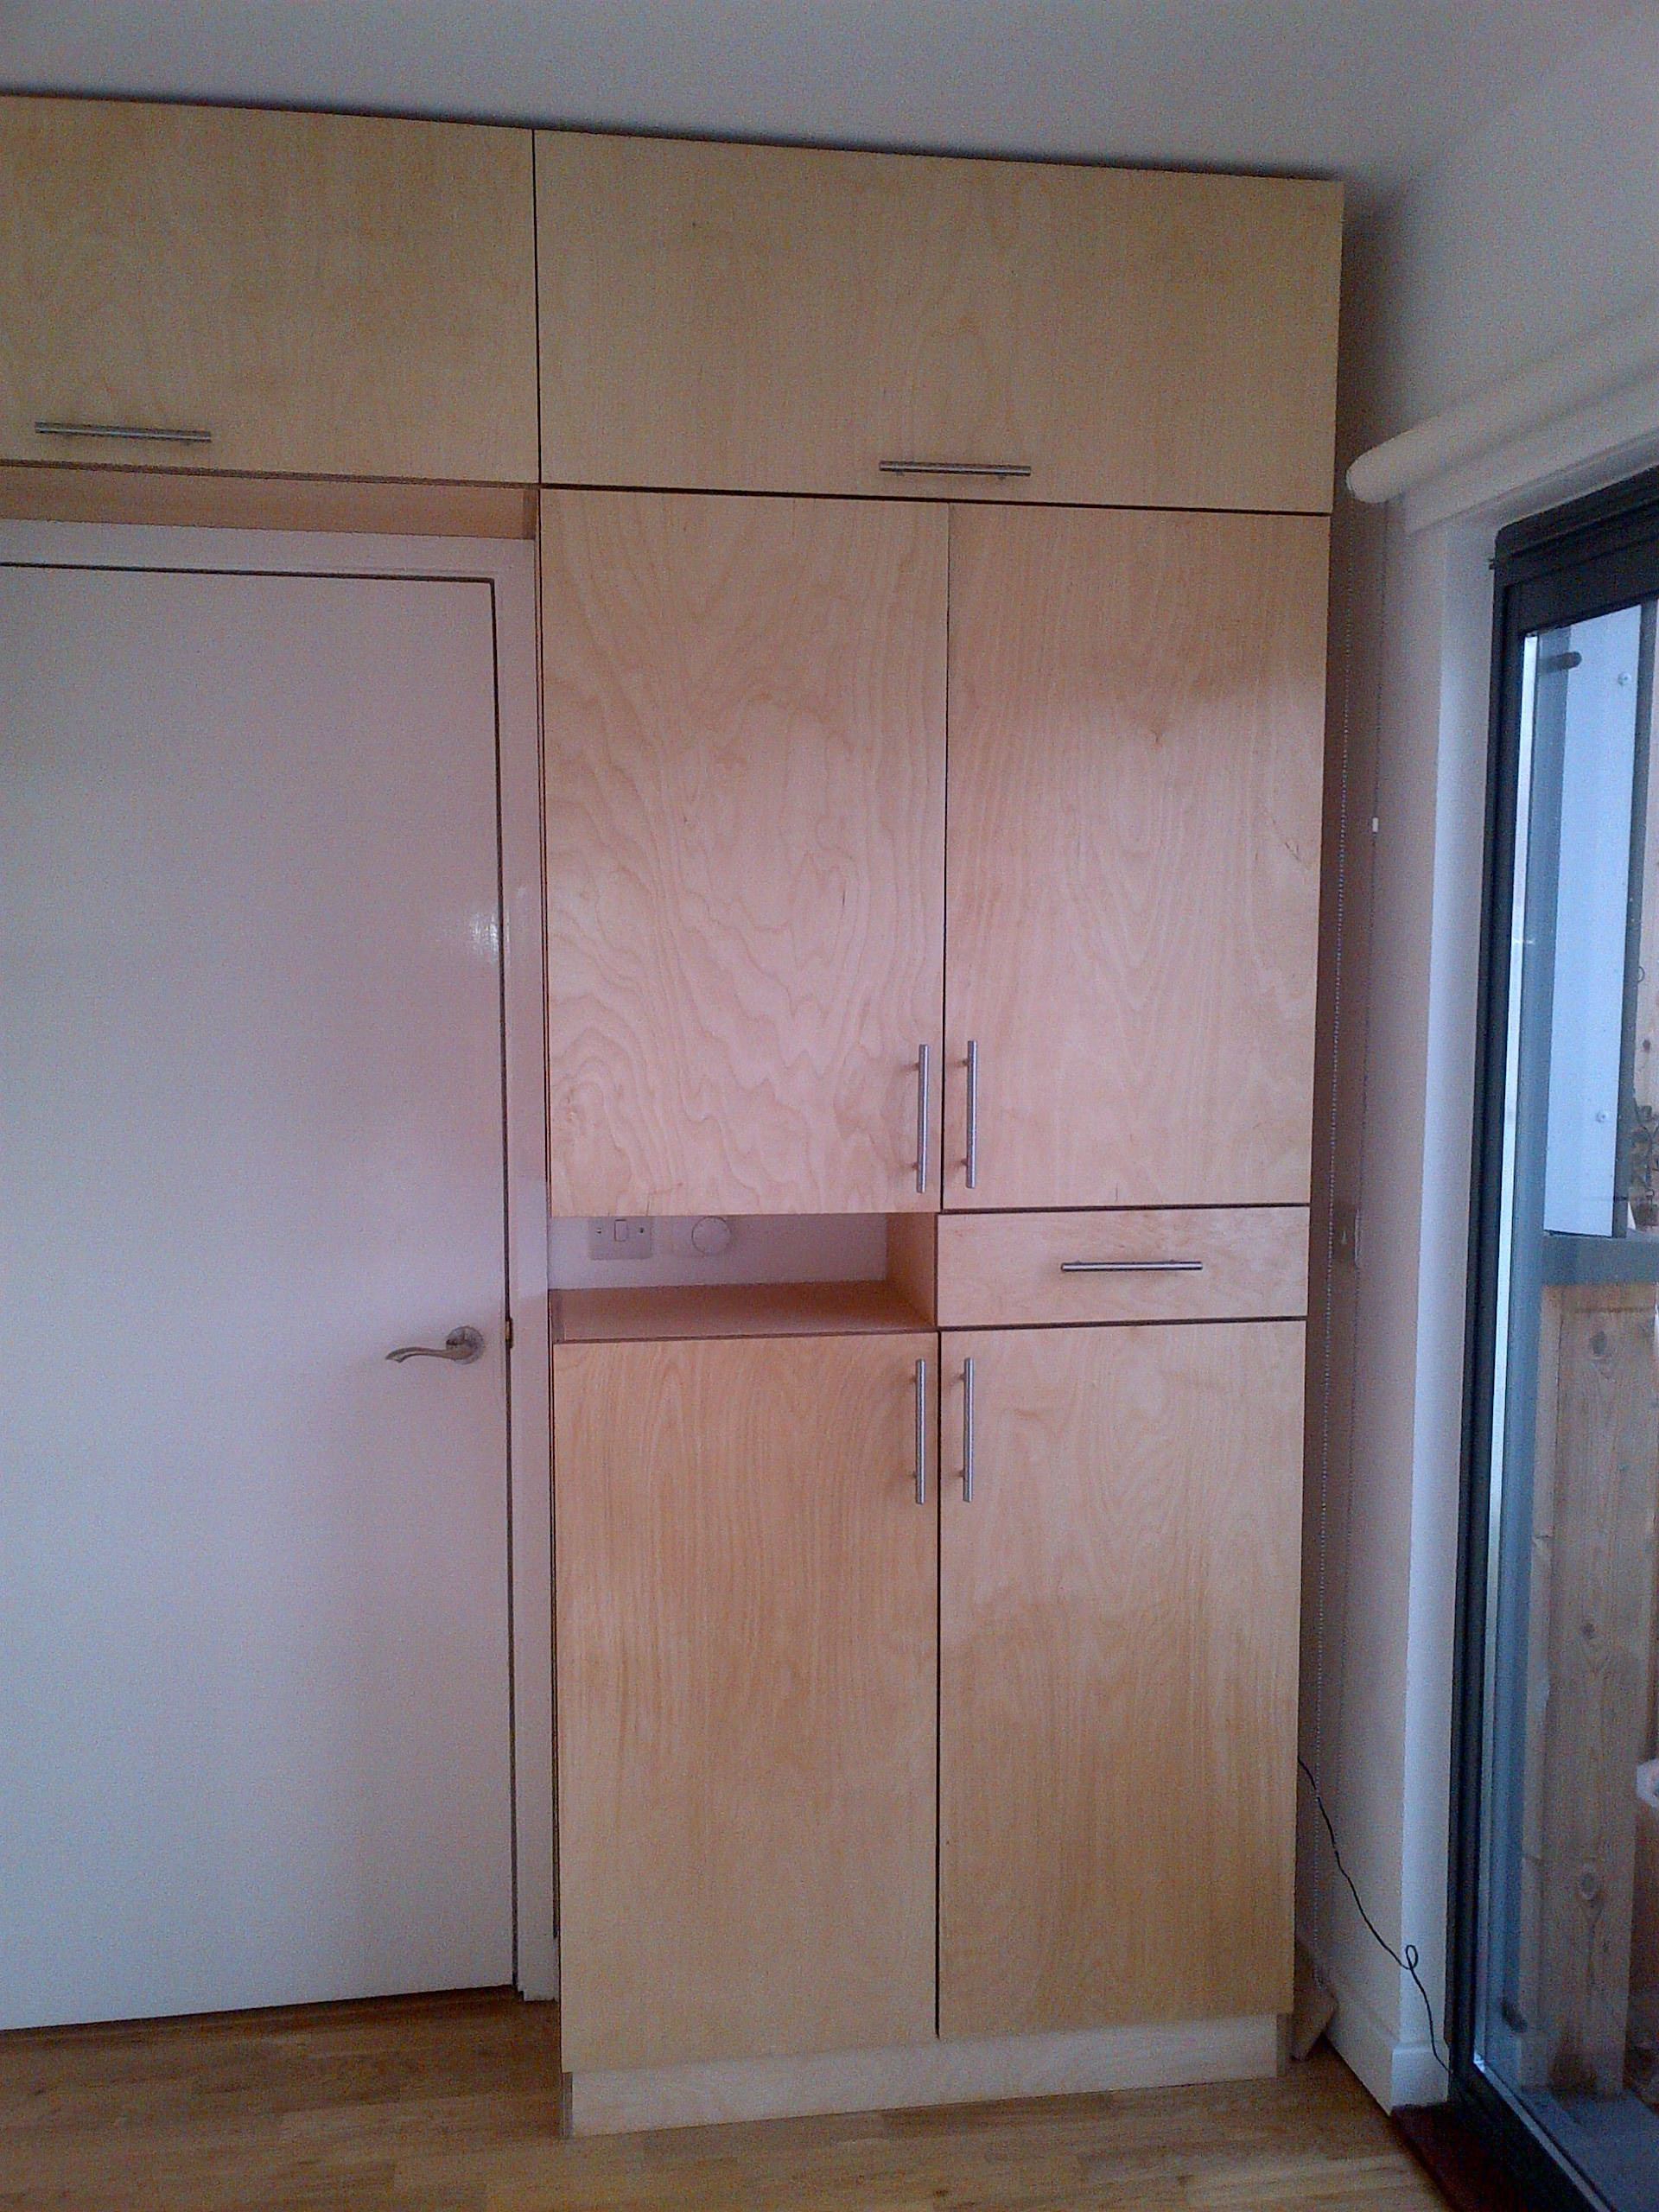 Birch Ply Cabinetry - right side of room